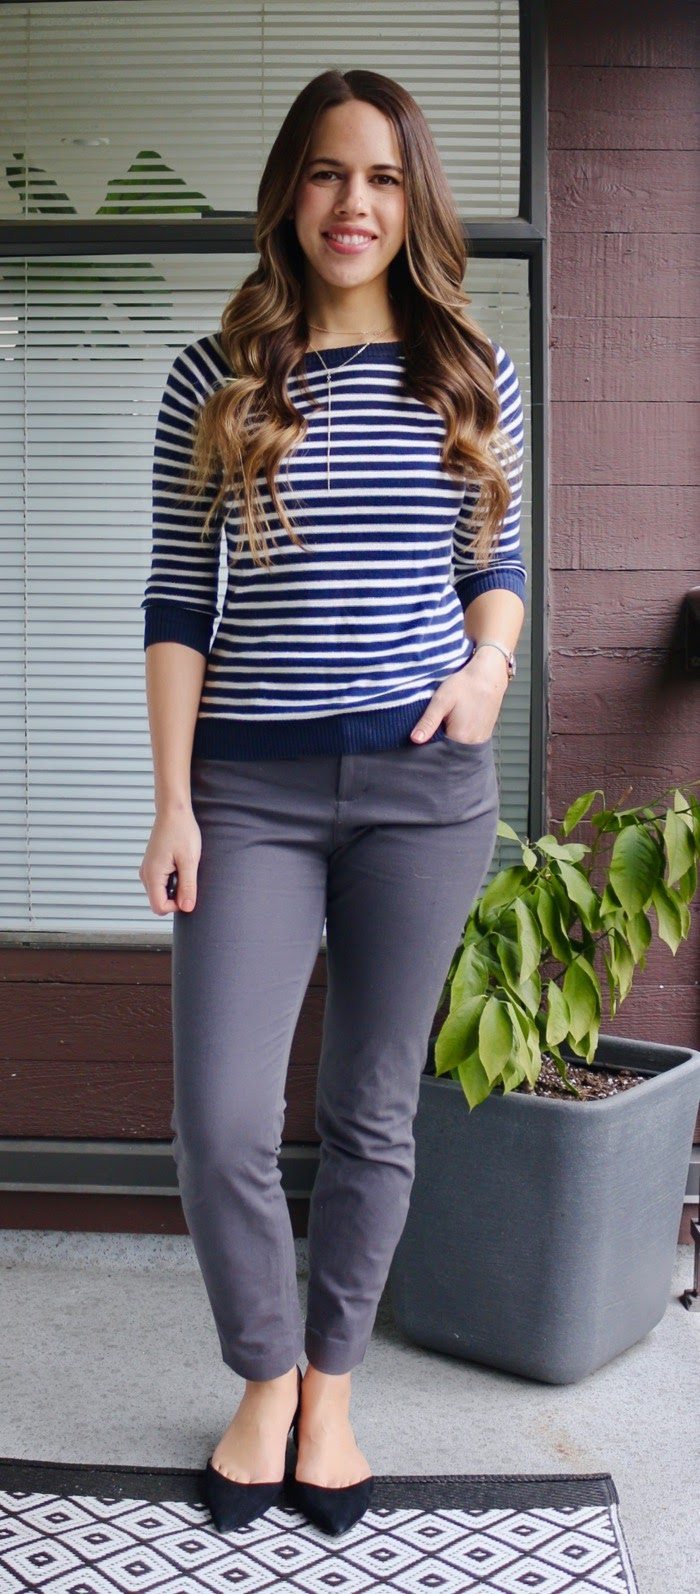 Jules in Flats - Simple Stripes and Grey Ankle Pants for Work